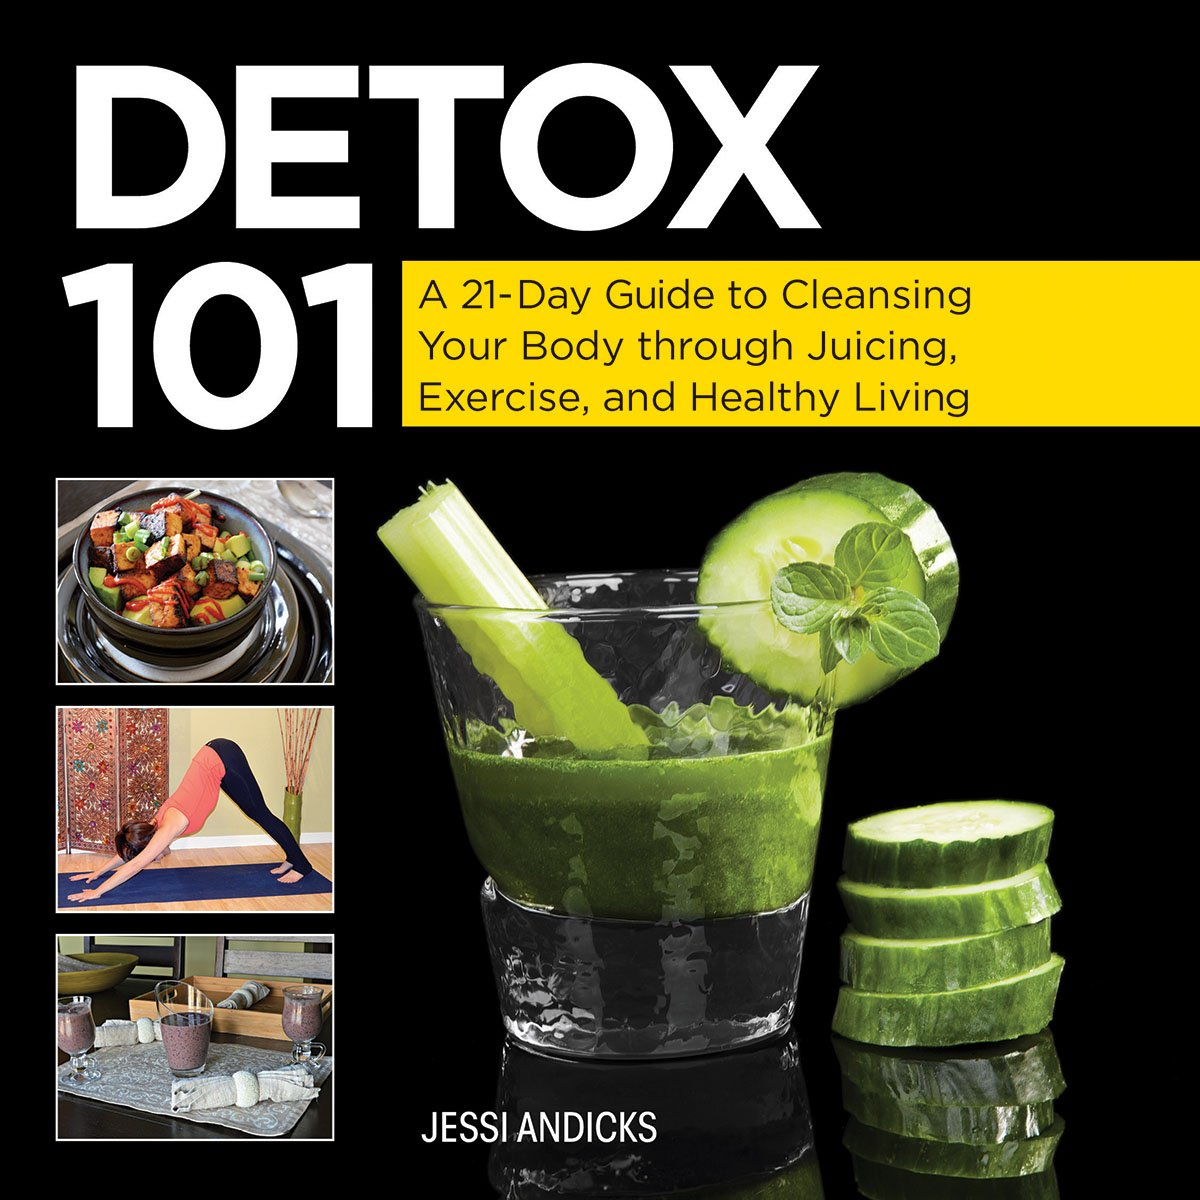 Detox 101: A 21-Day Guide to Cleansing Your Body through Juicing, Exercise,  and Healthy Living: Jessi Andricks: 9781629147178: Amazon.com: Books